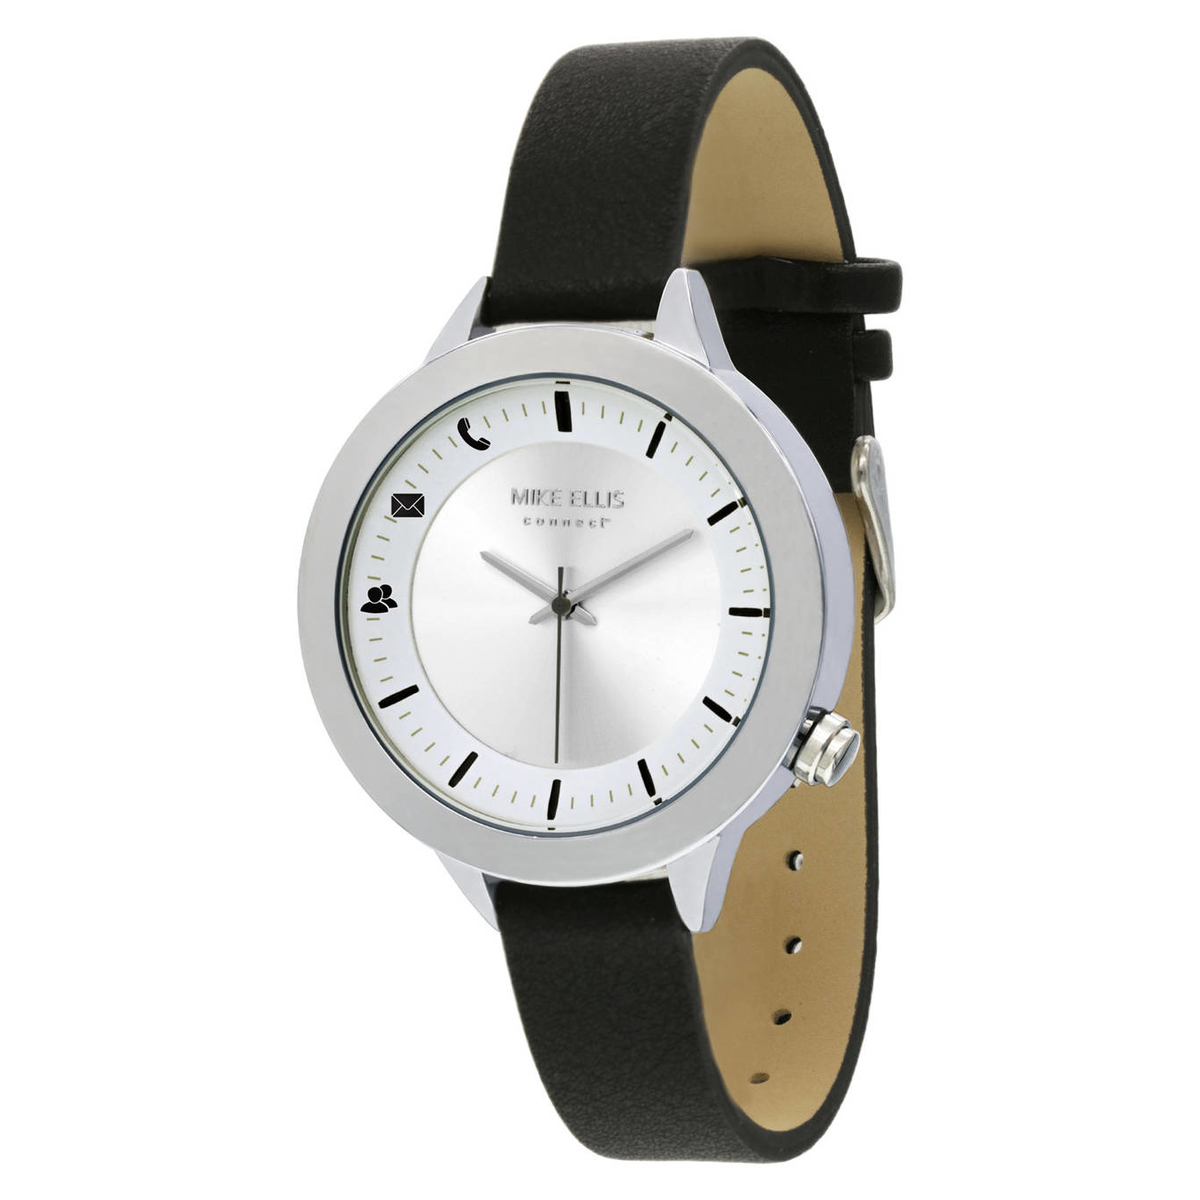 Mike Ellis Hybrid Smartwatch Watch Liz Edelstahl